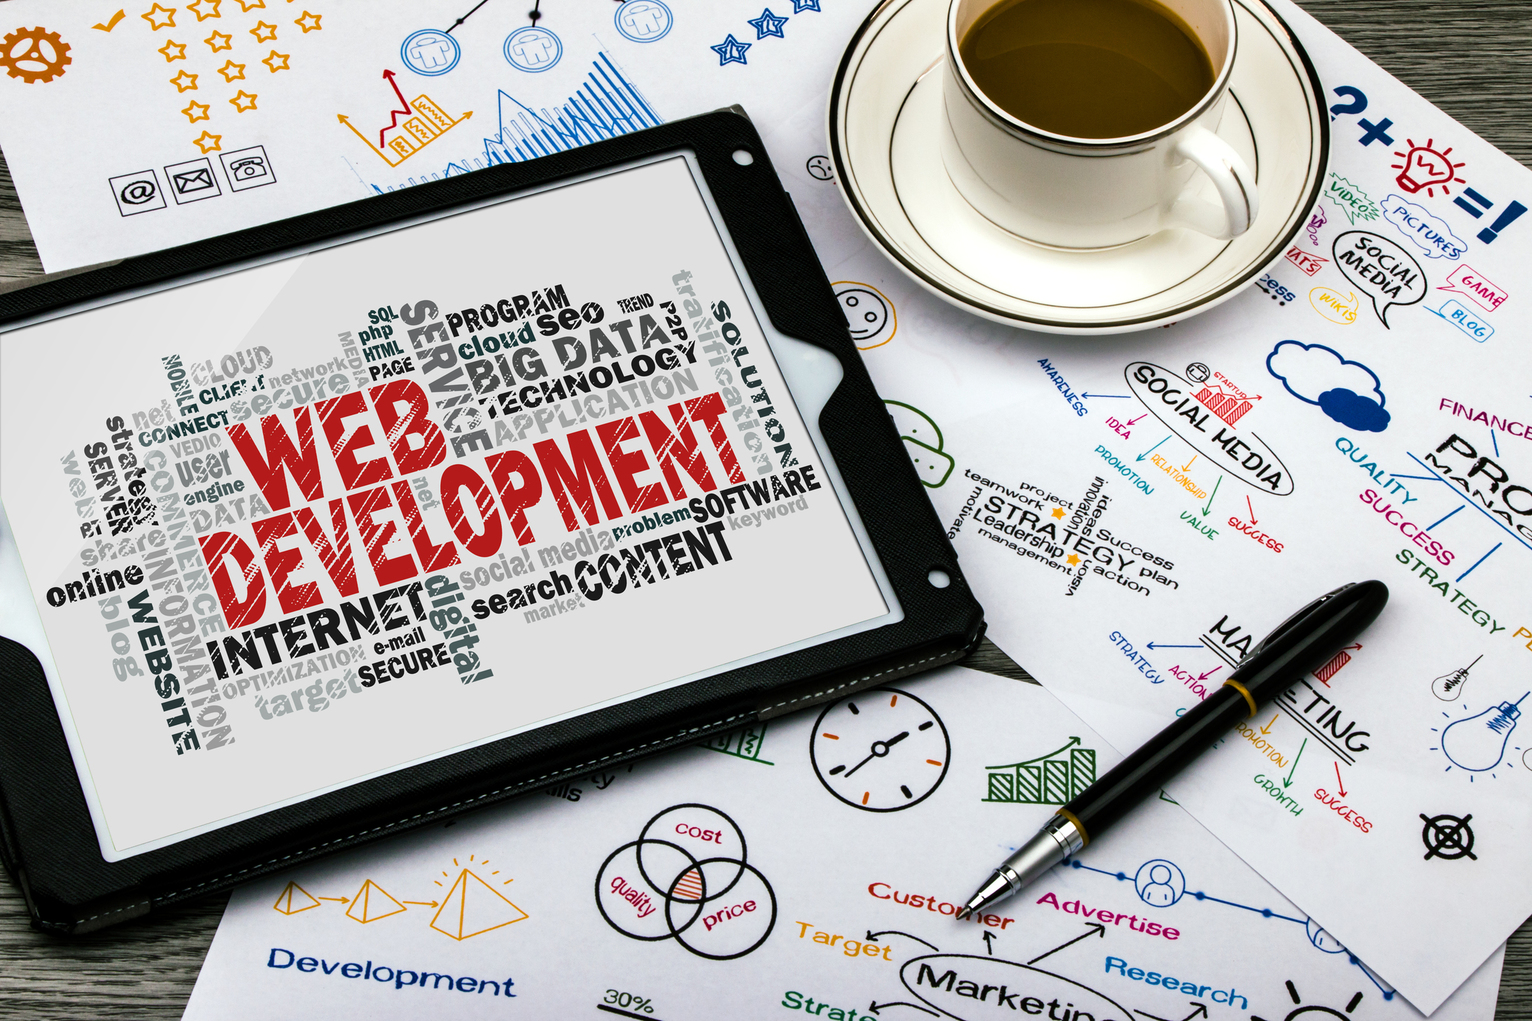 Understanding the Importance of Web Development